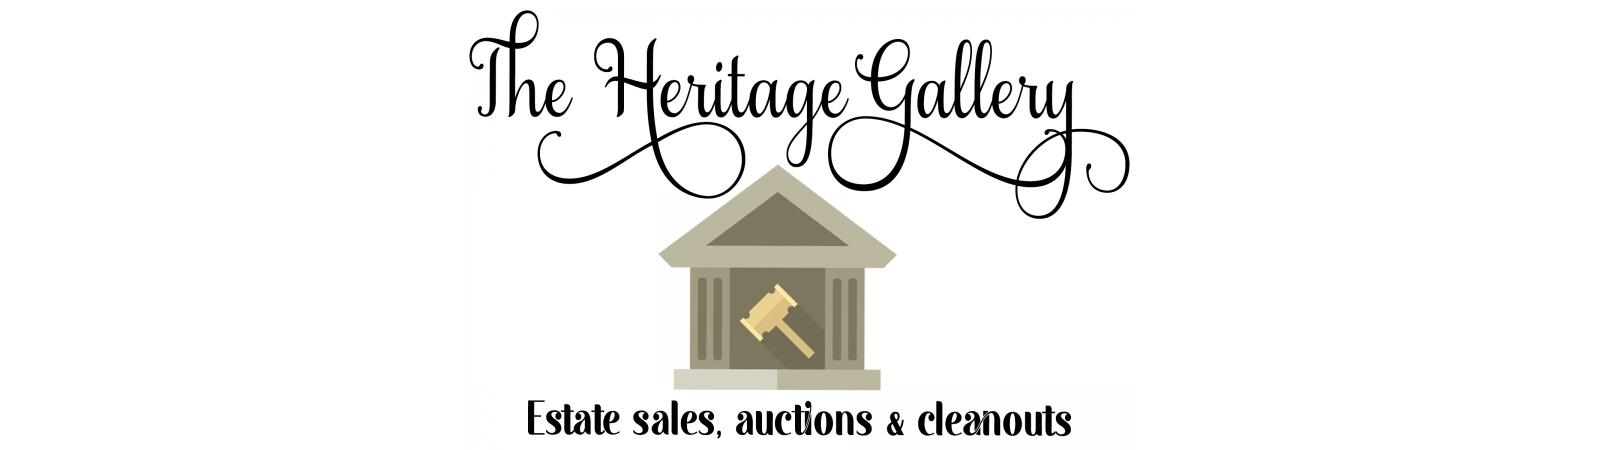 The Heritage Gallery | Auction Ninja